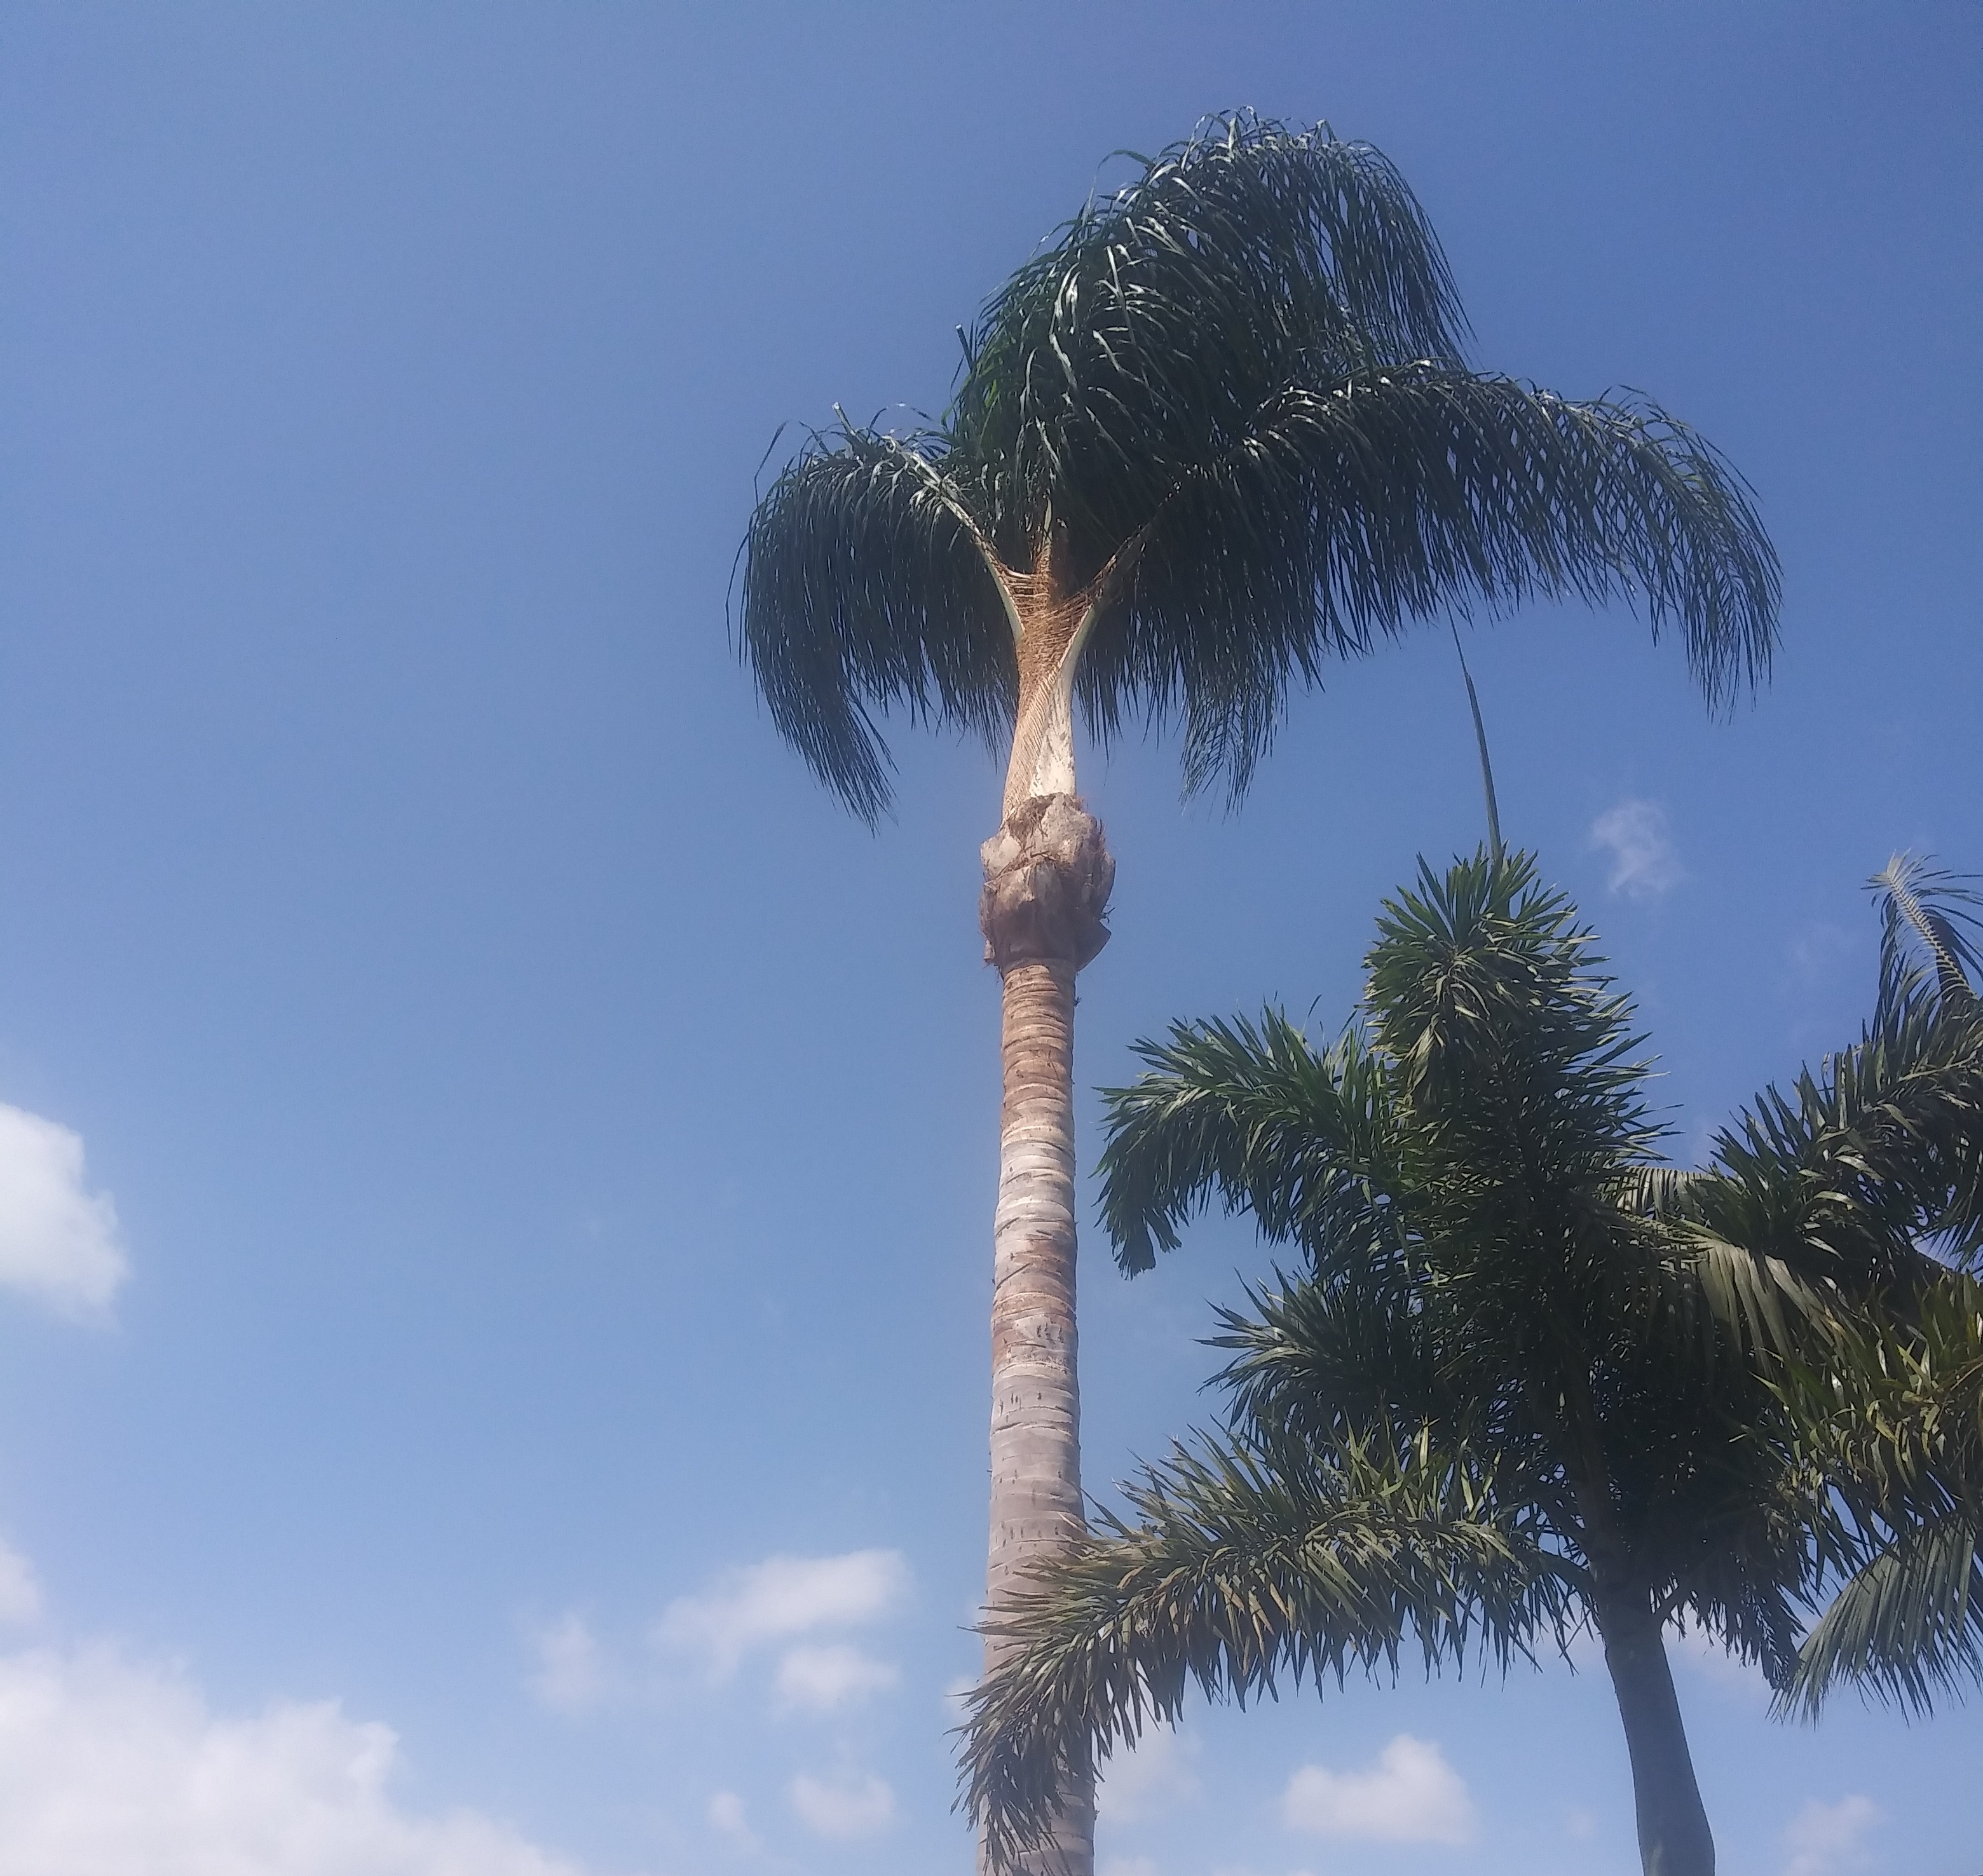 Pruning of palm trees.